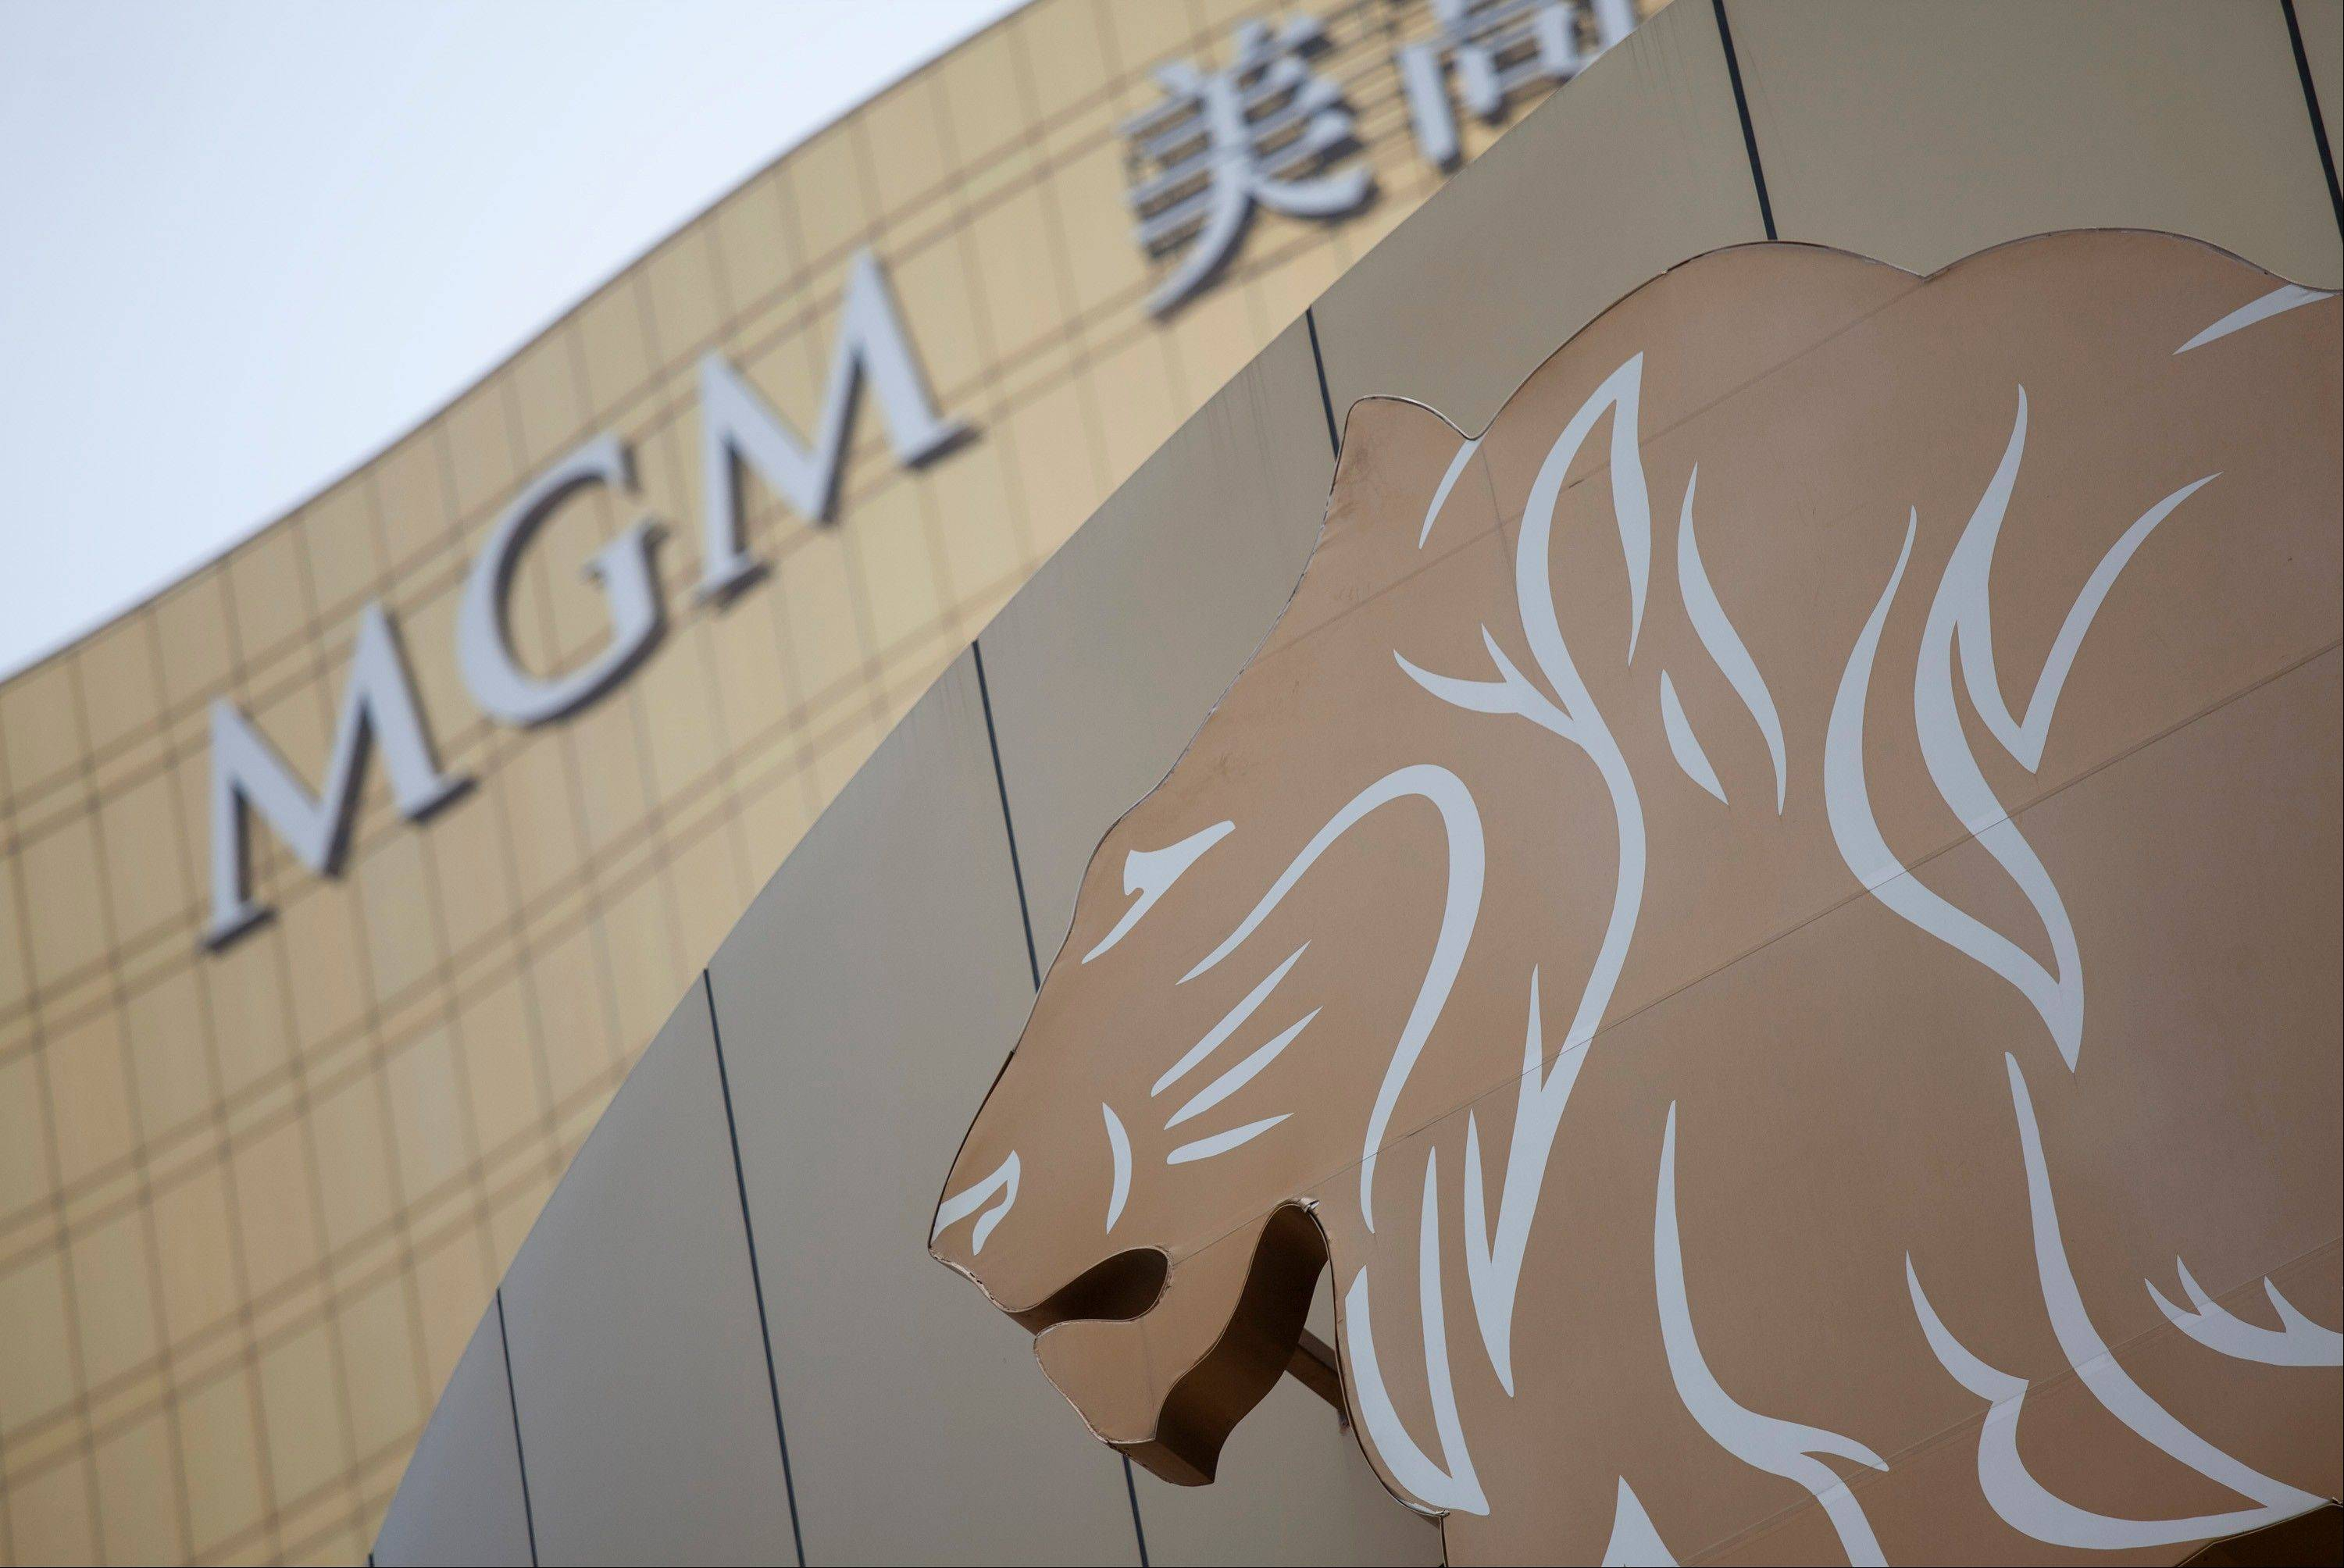 Signage for the MGM Macau casino resort, operated by MGM China Holdings Ltd., is displayed outside the casino in Macau, China, on Tuesday, Aug. 7, 2012. MGM Resorts International, which holds 51 percent of MGM China, is expected to announce second-quarter earnings today.